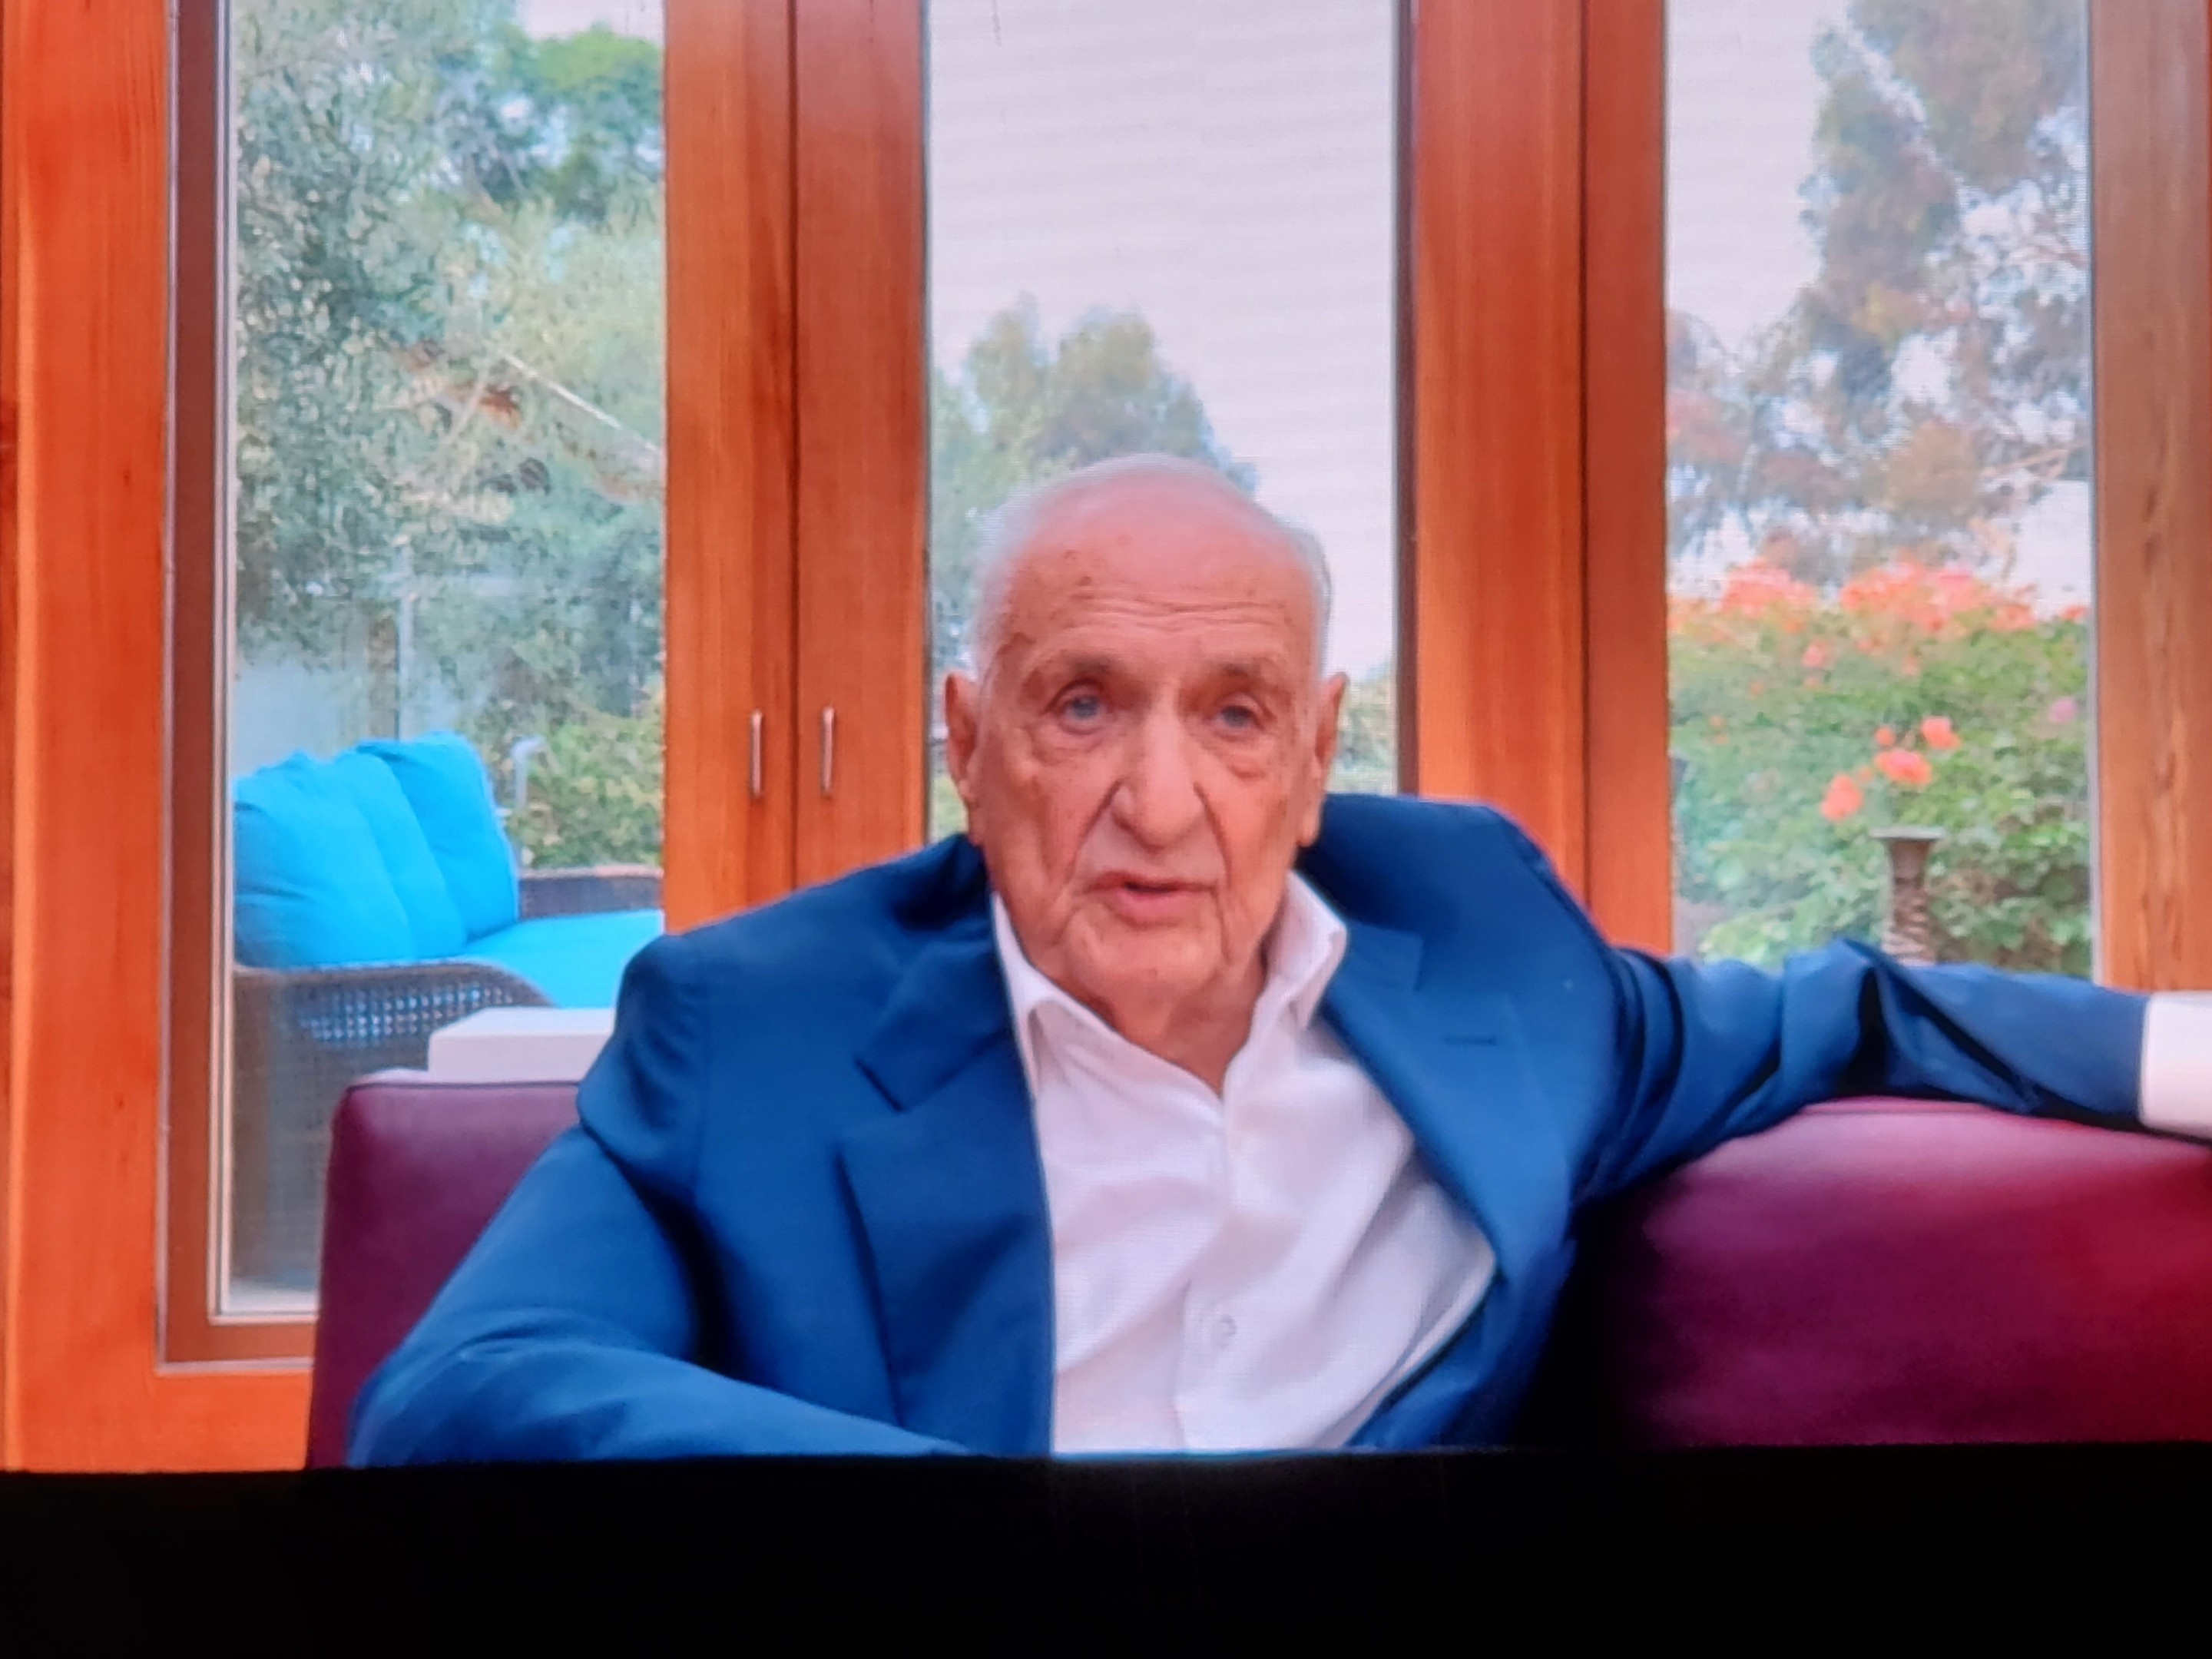 Frank Gehry, an elderly man, delivering comments on a video screen